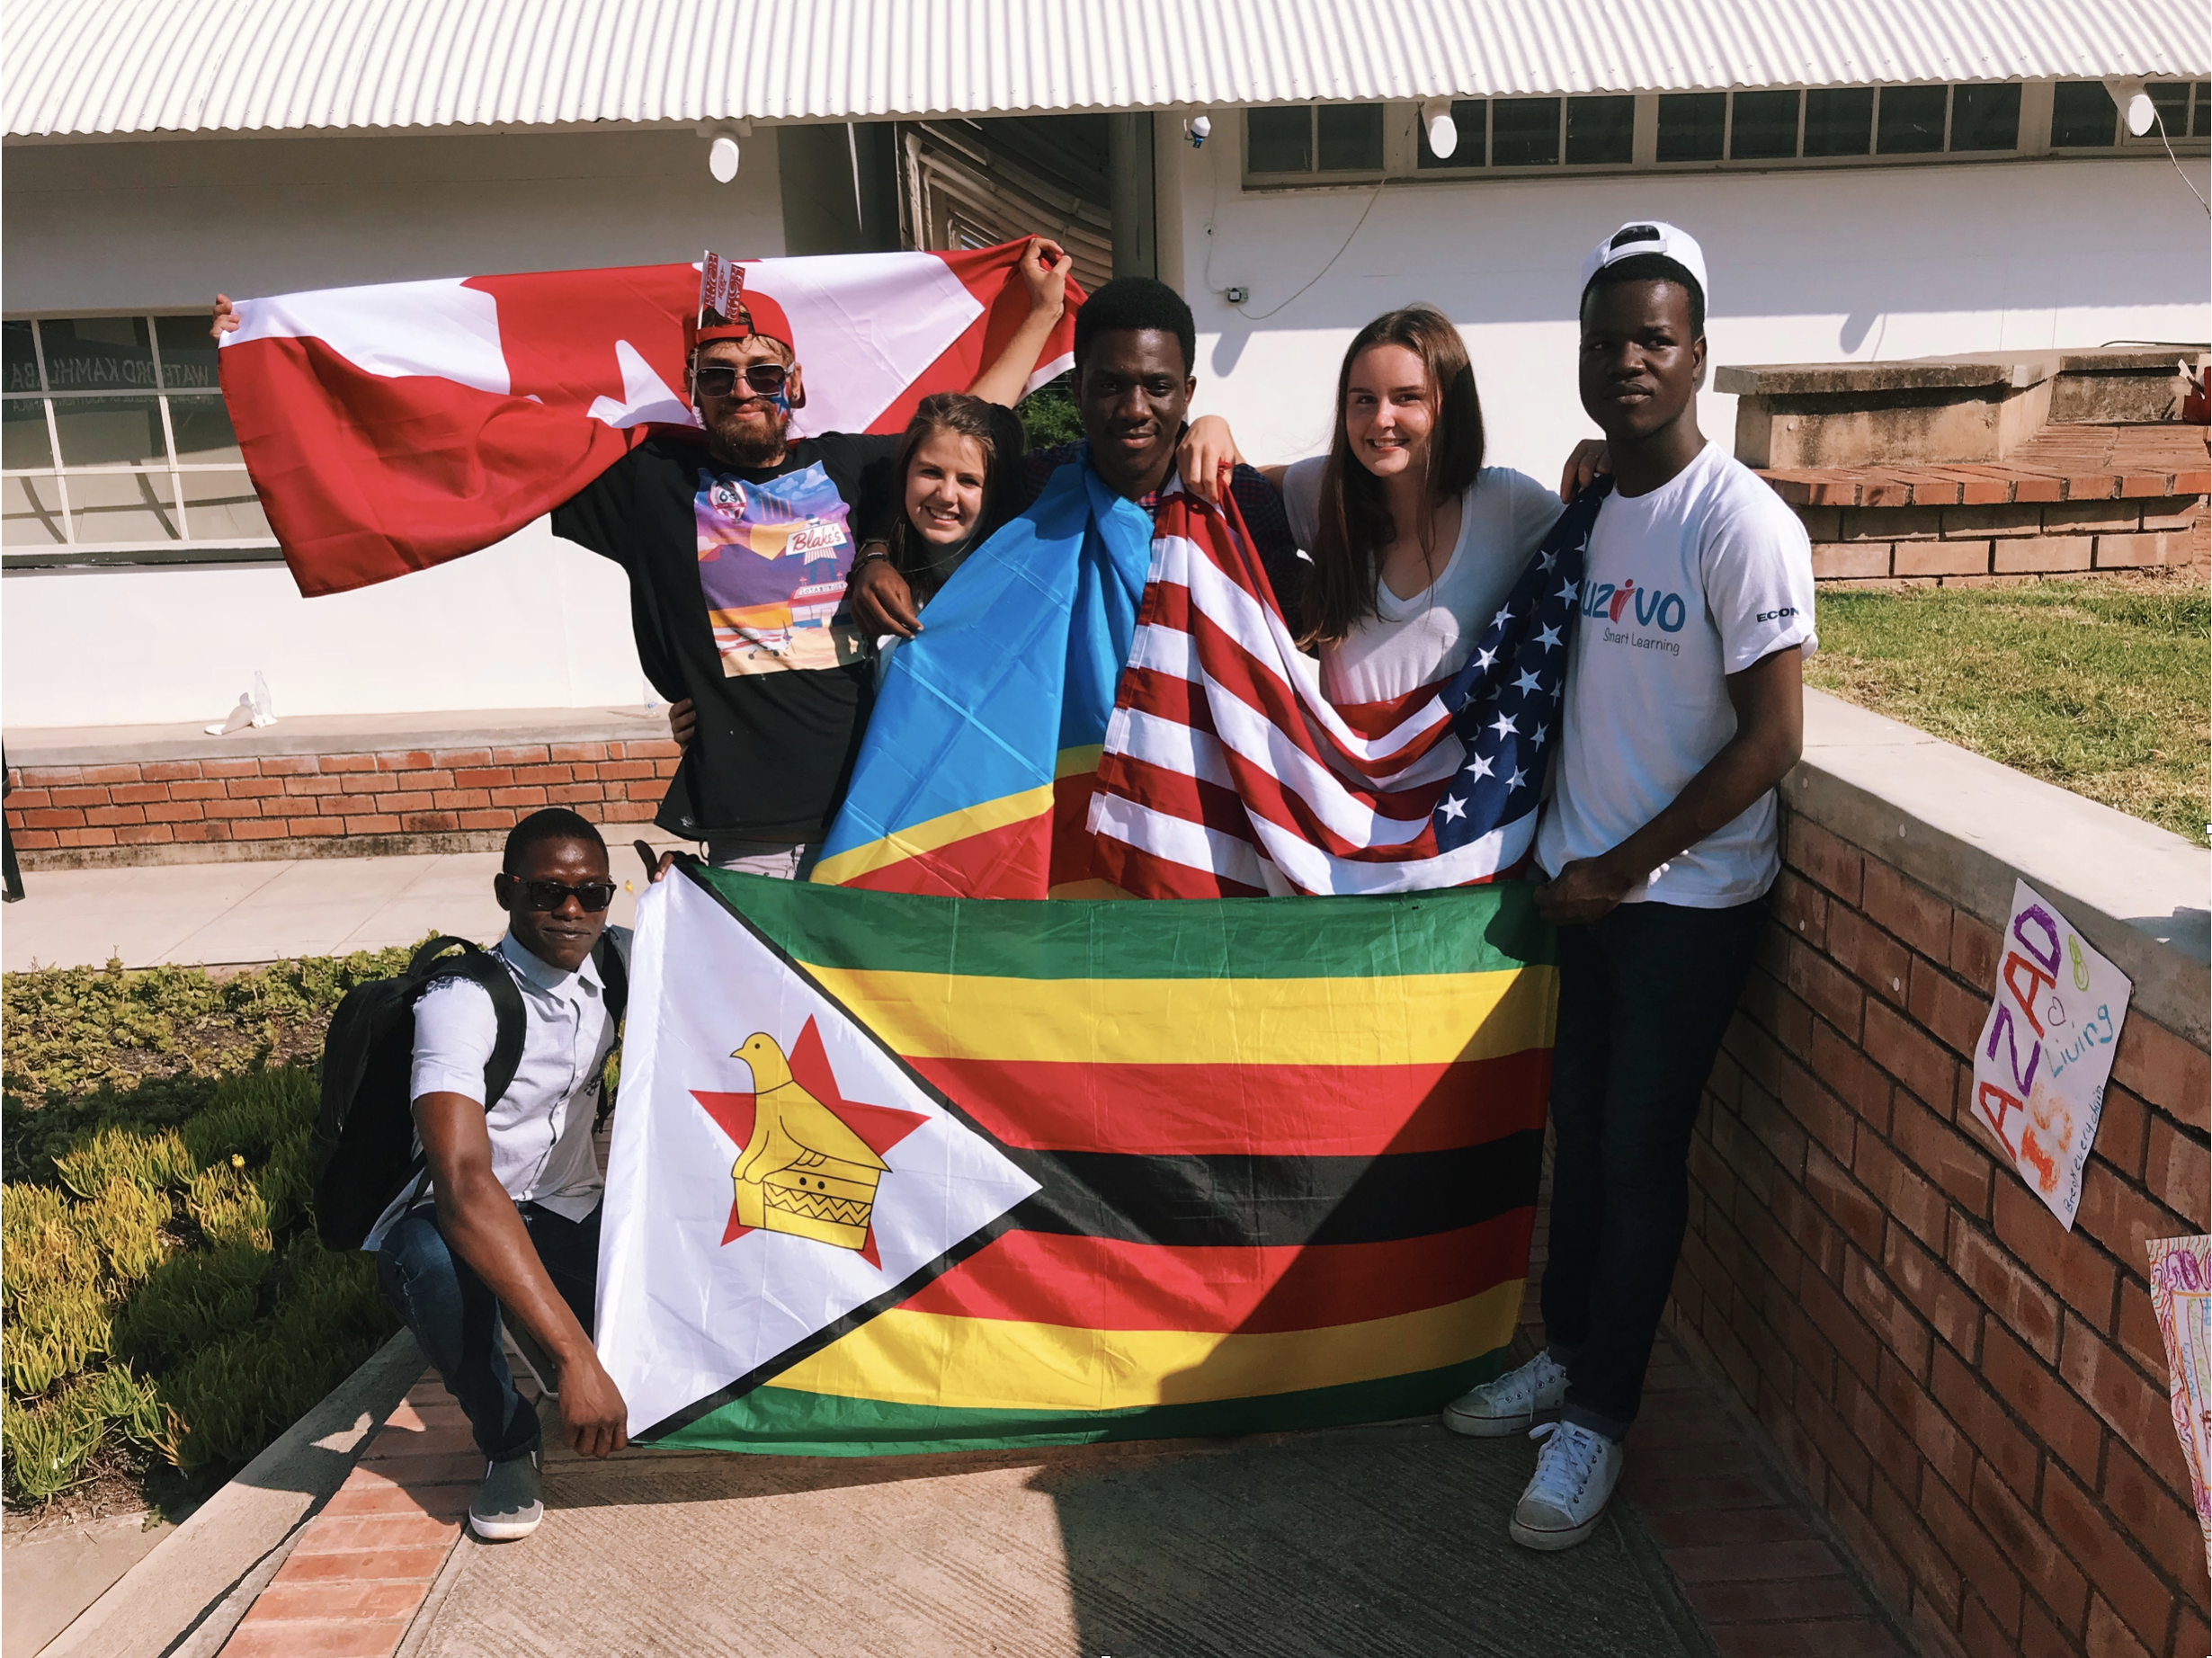 On UWC day! (From left to right: Sadrin from Zimbabwe, James from USA, Abbey from Canada, Elie from the Democratic Republic of Congo, Emma (me) from Norway and USA, Overpower from Zimbabwe.)